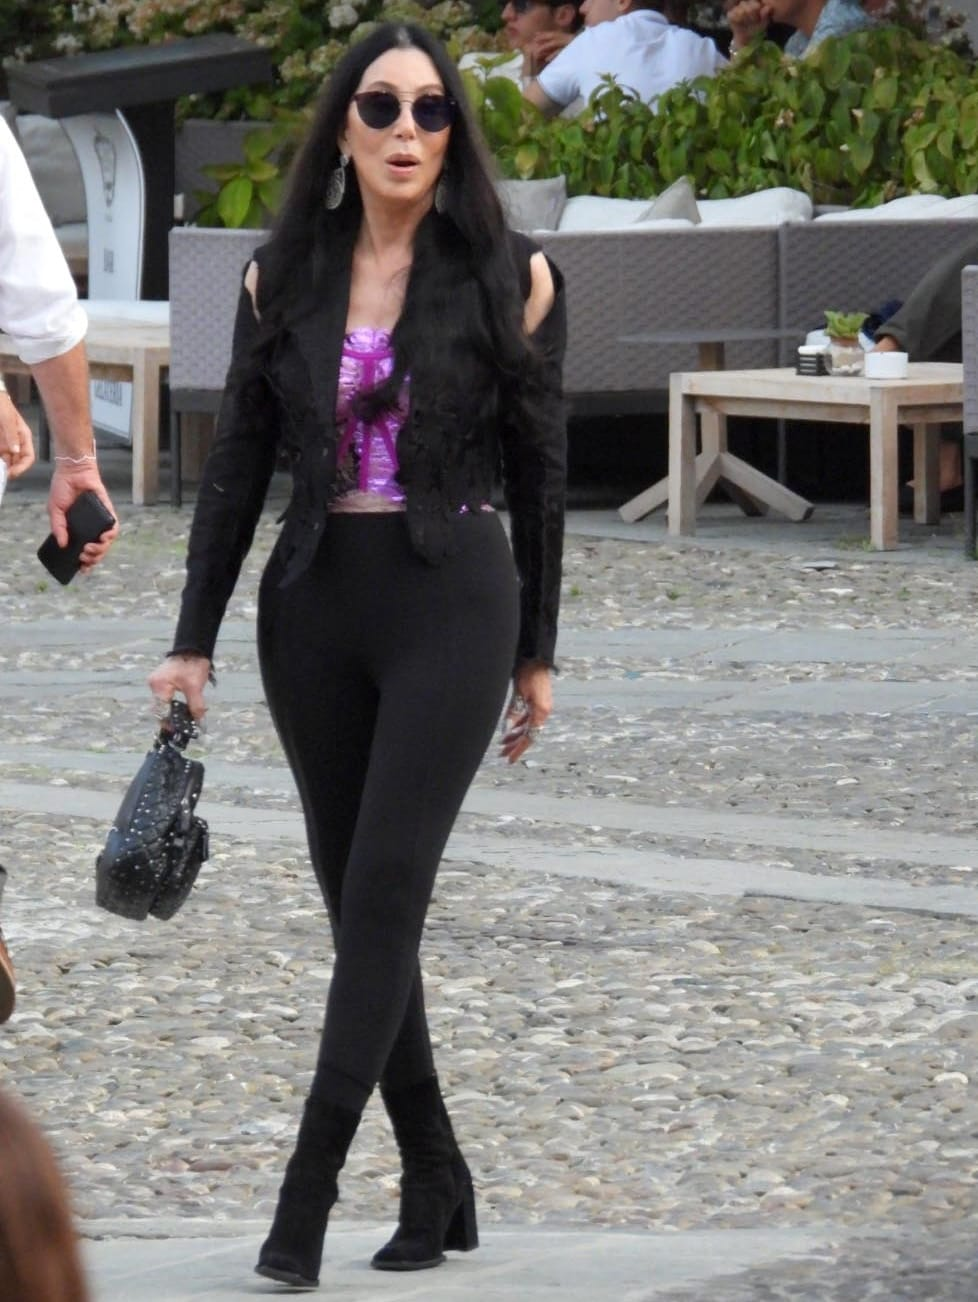 Cher wears black pants and a purple sequined top underneath a black blazer